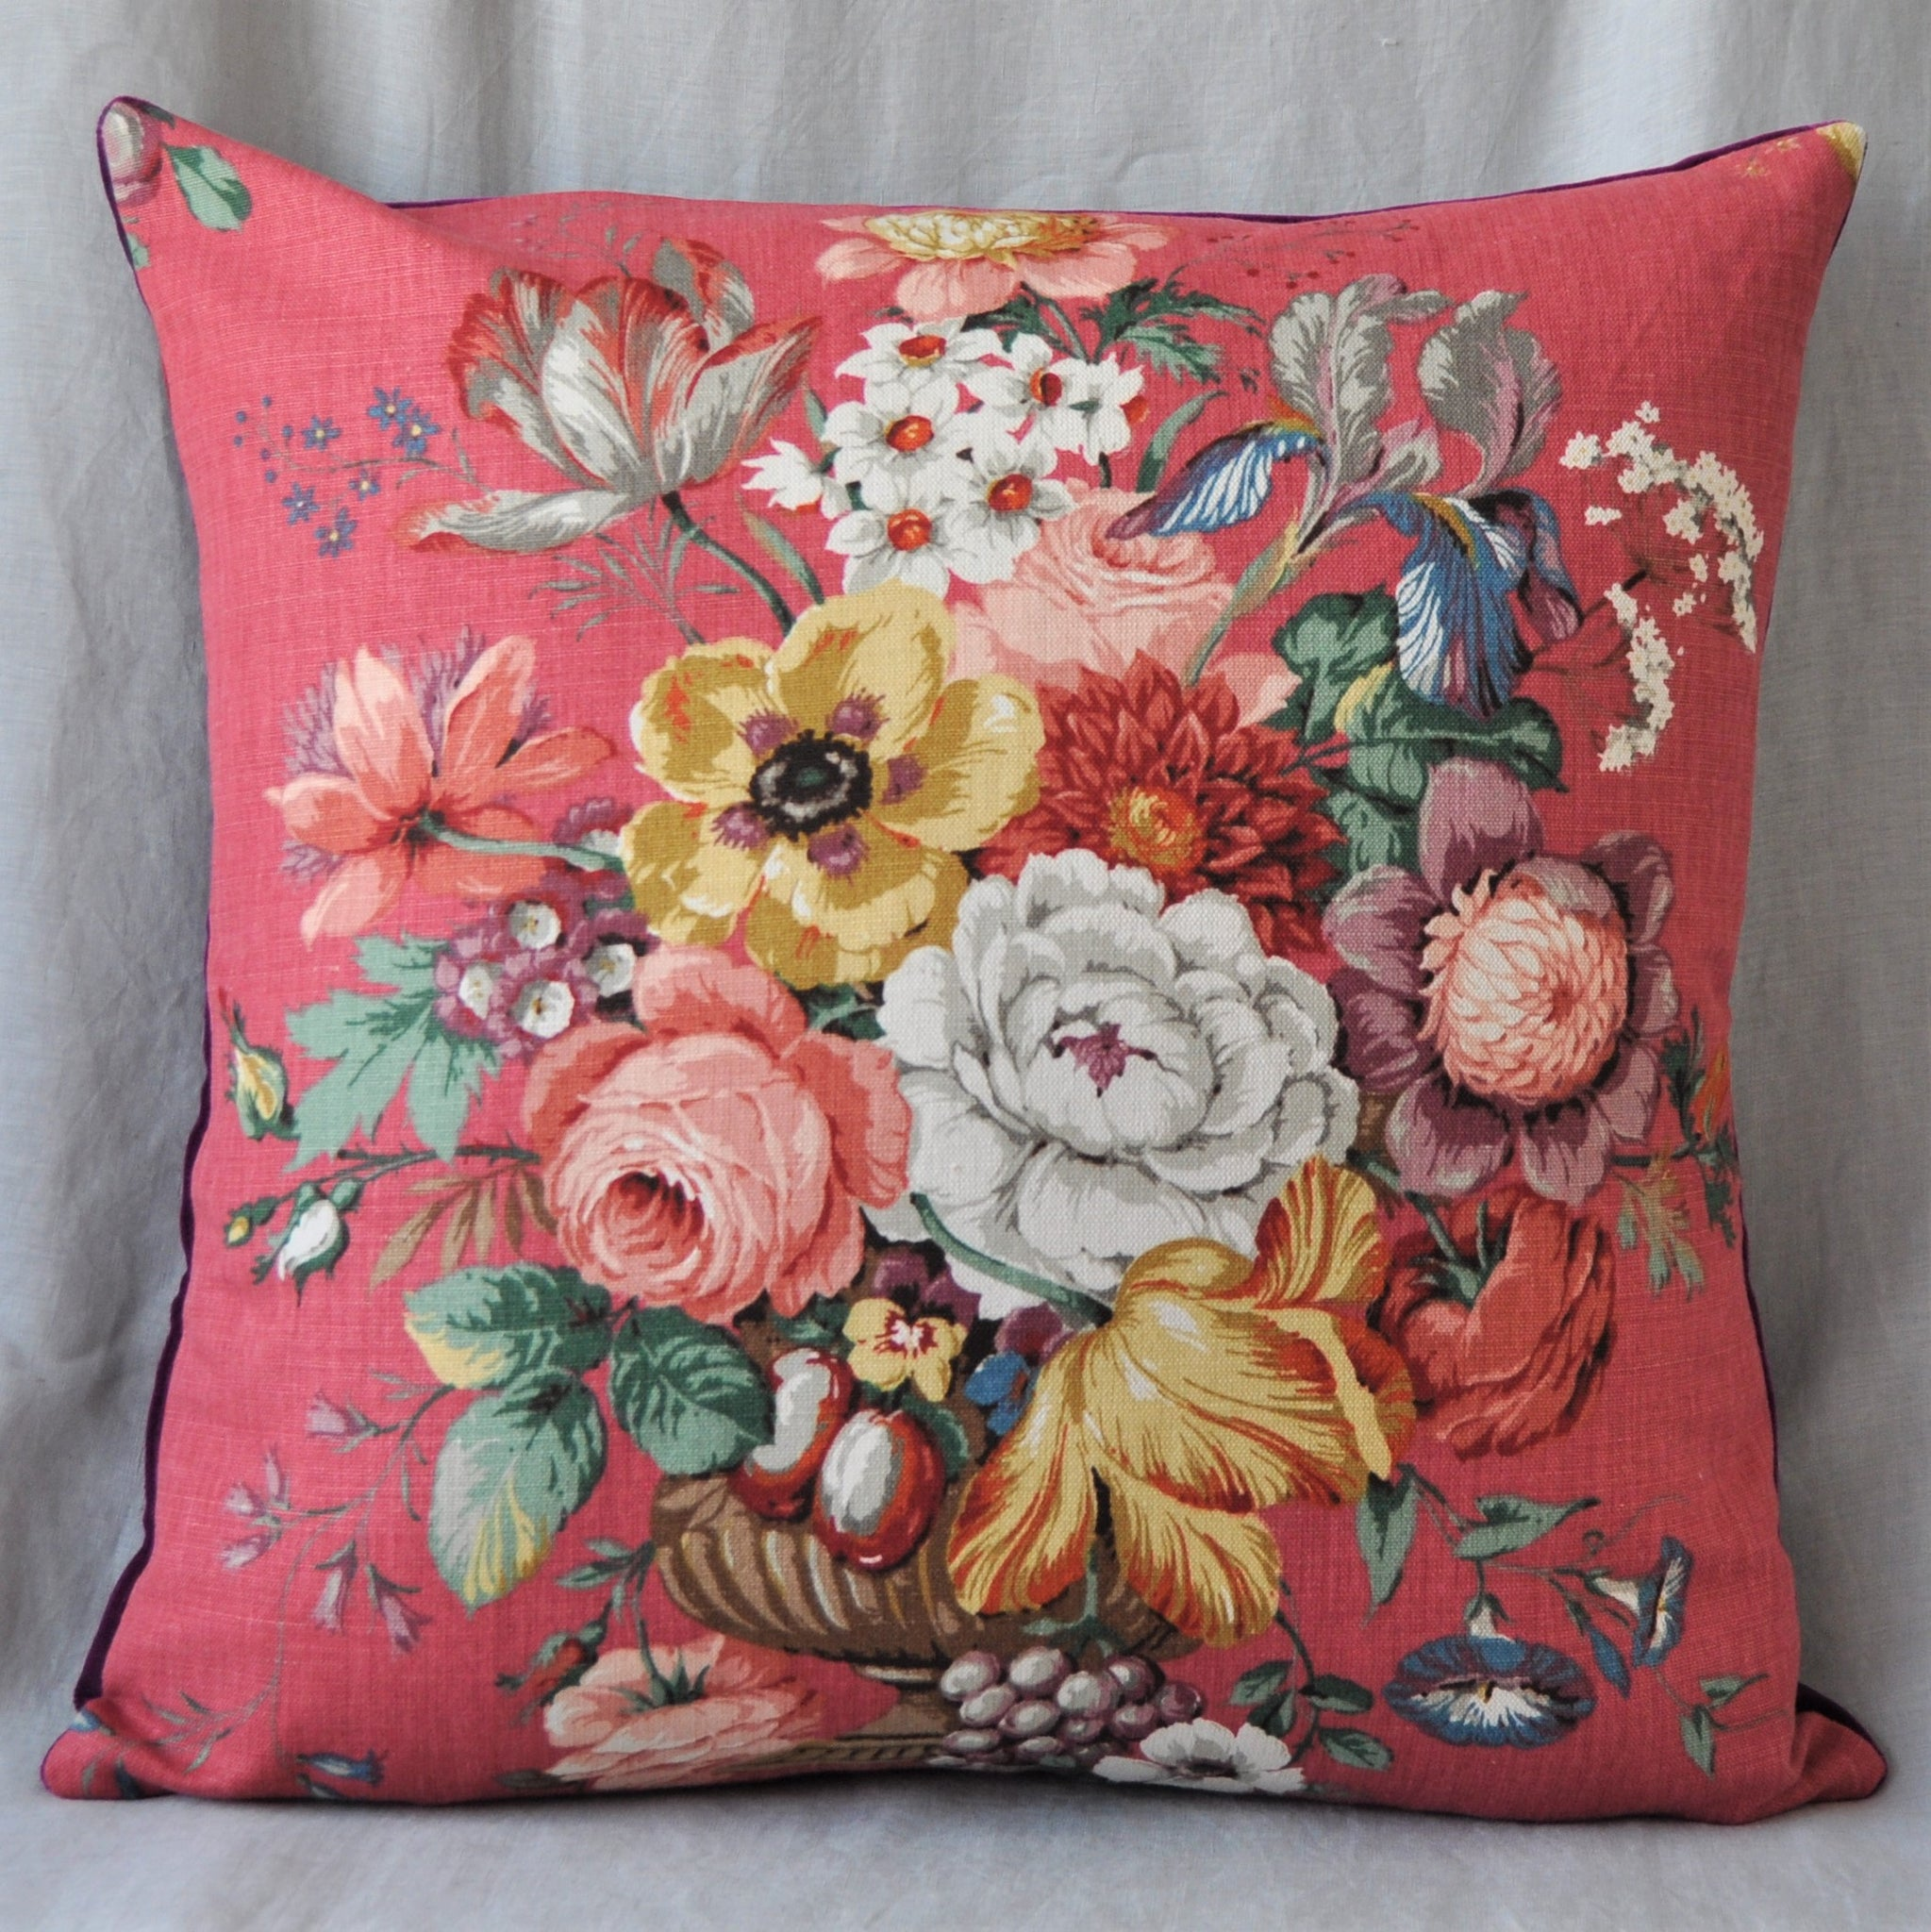 Vintage Floral Cushion In Red Vintage Sanderson Fabric